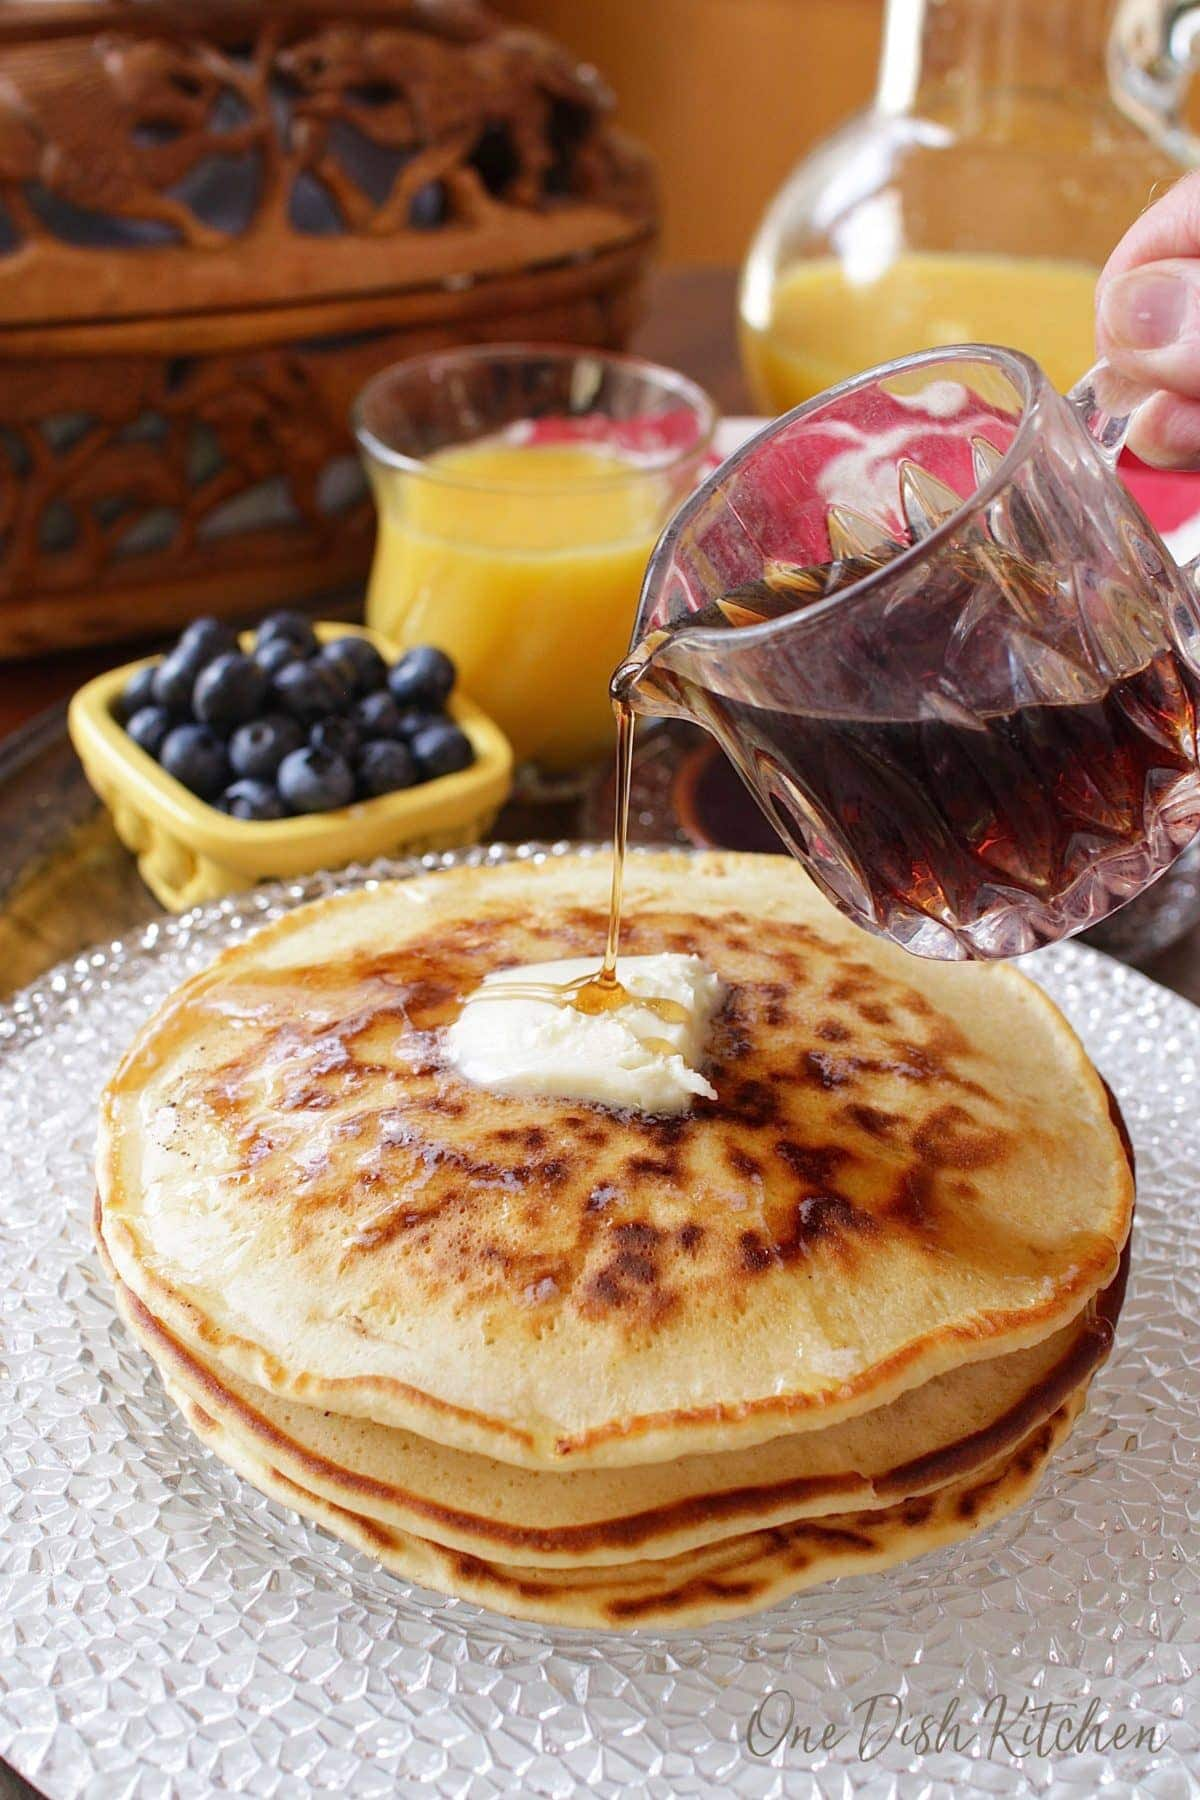 Pouring syrup over stack of pancakes on a plate topped with melting butter next to a small bowl of blueberries and a glass of orange juice